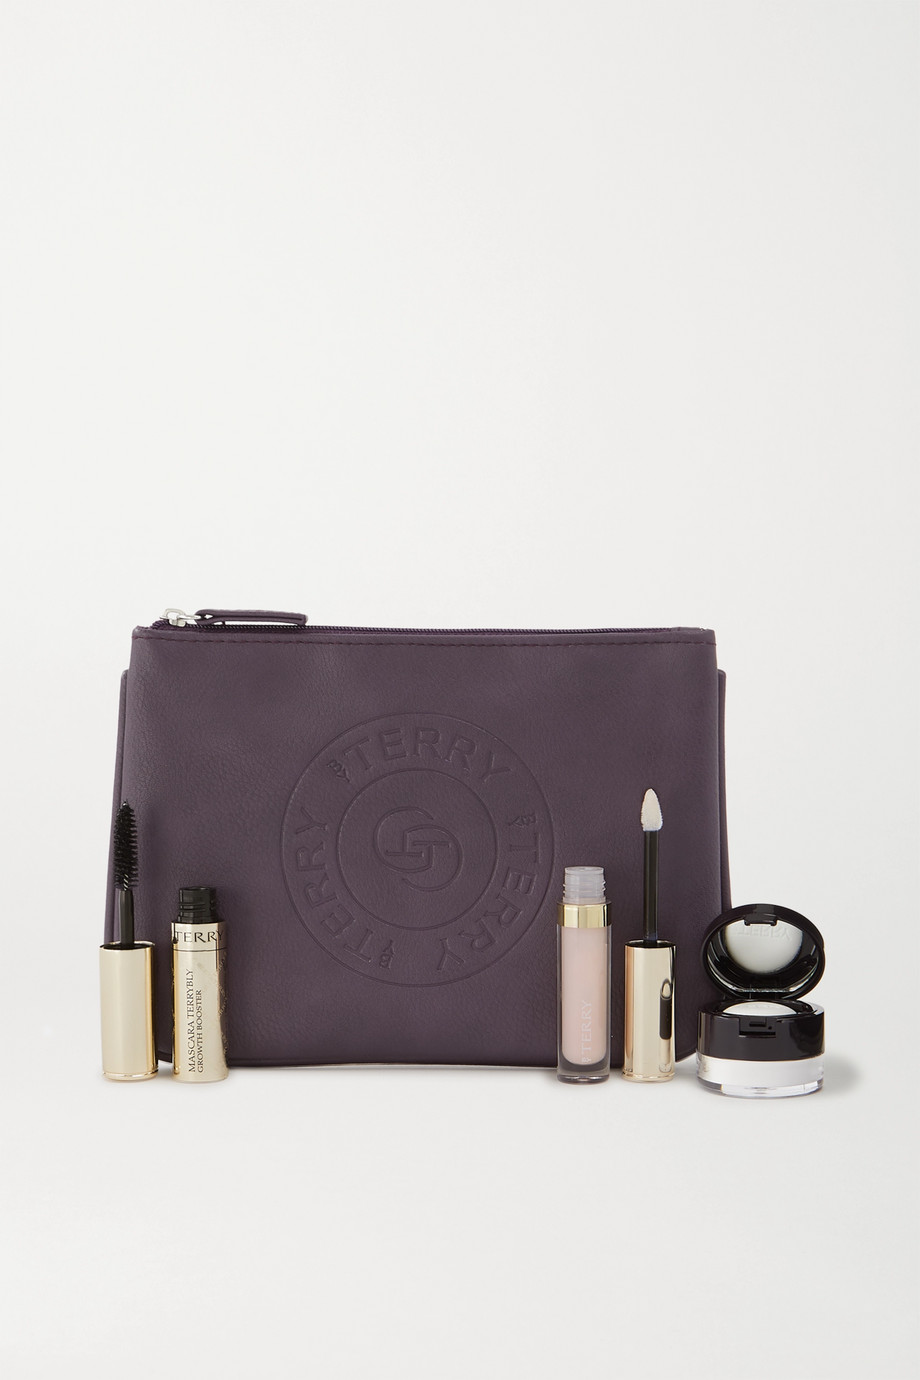 BY TERRY Trousse de beauté My Beauty Essentials